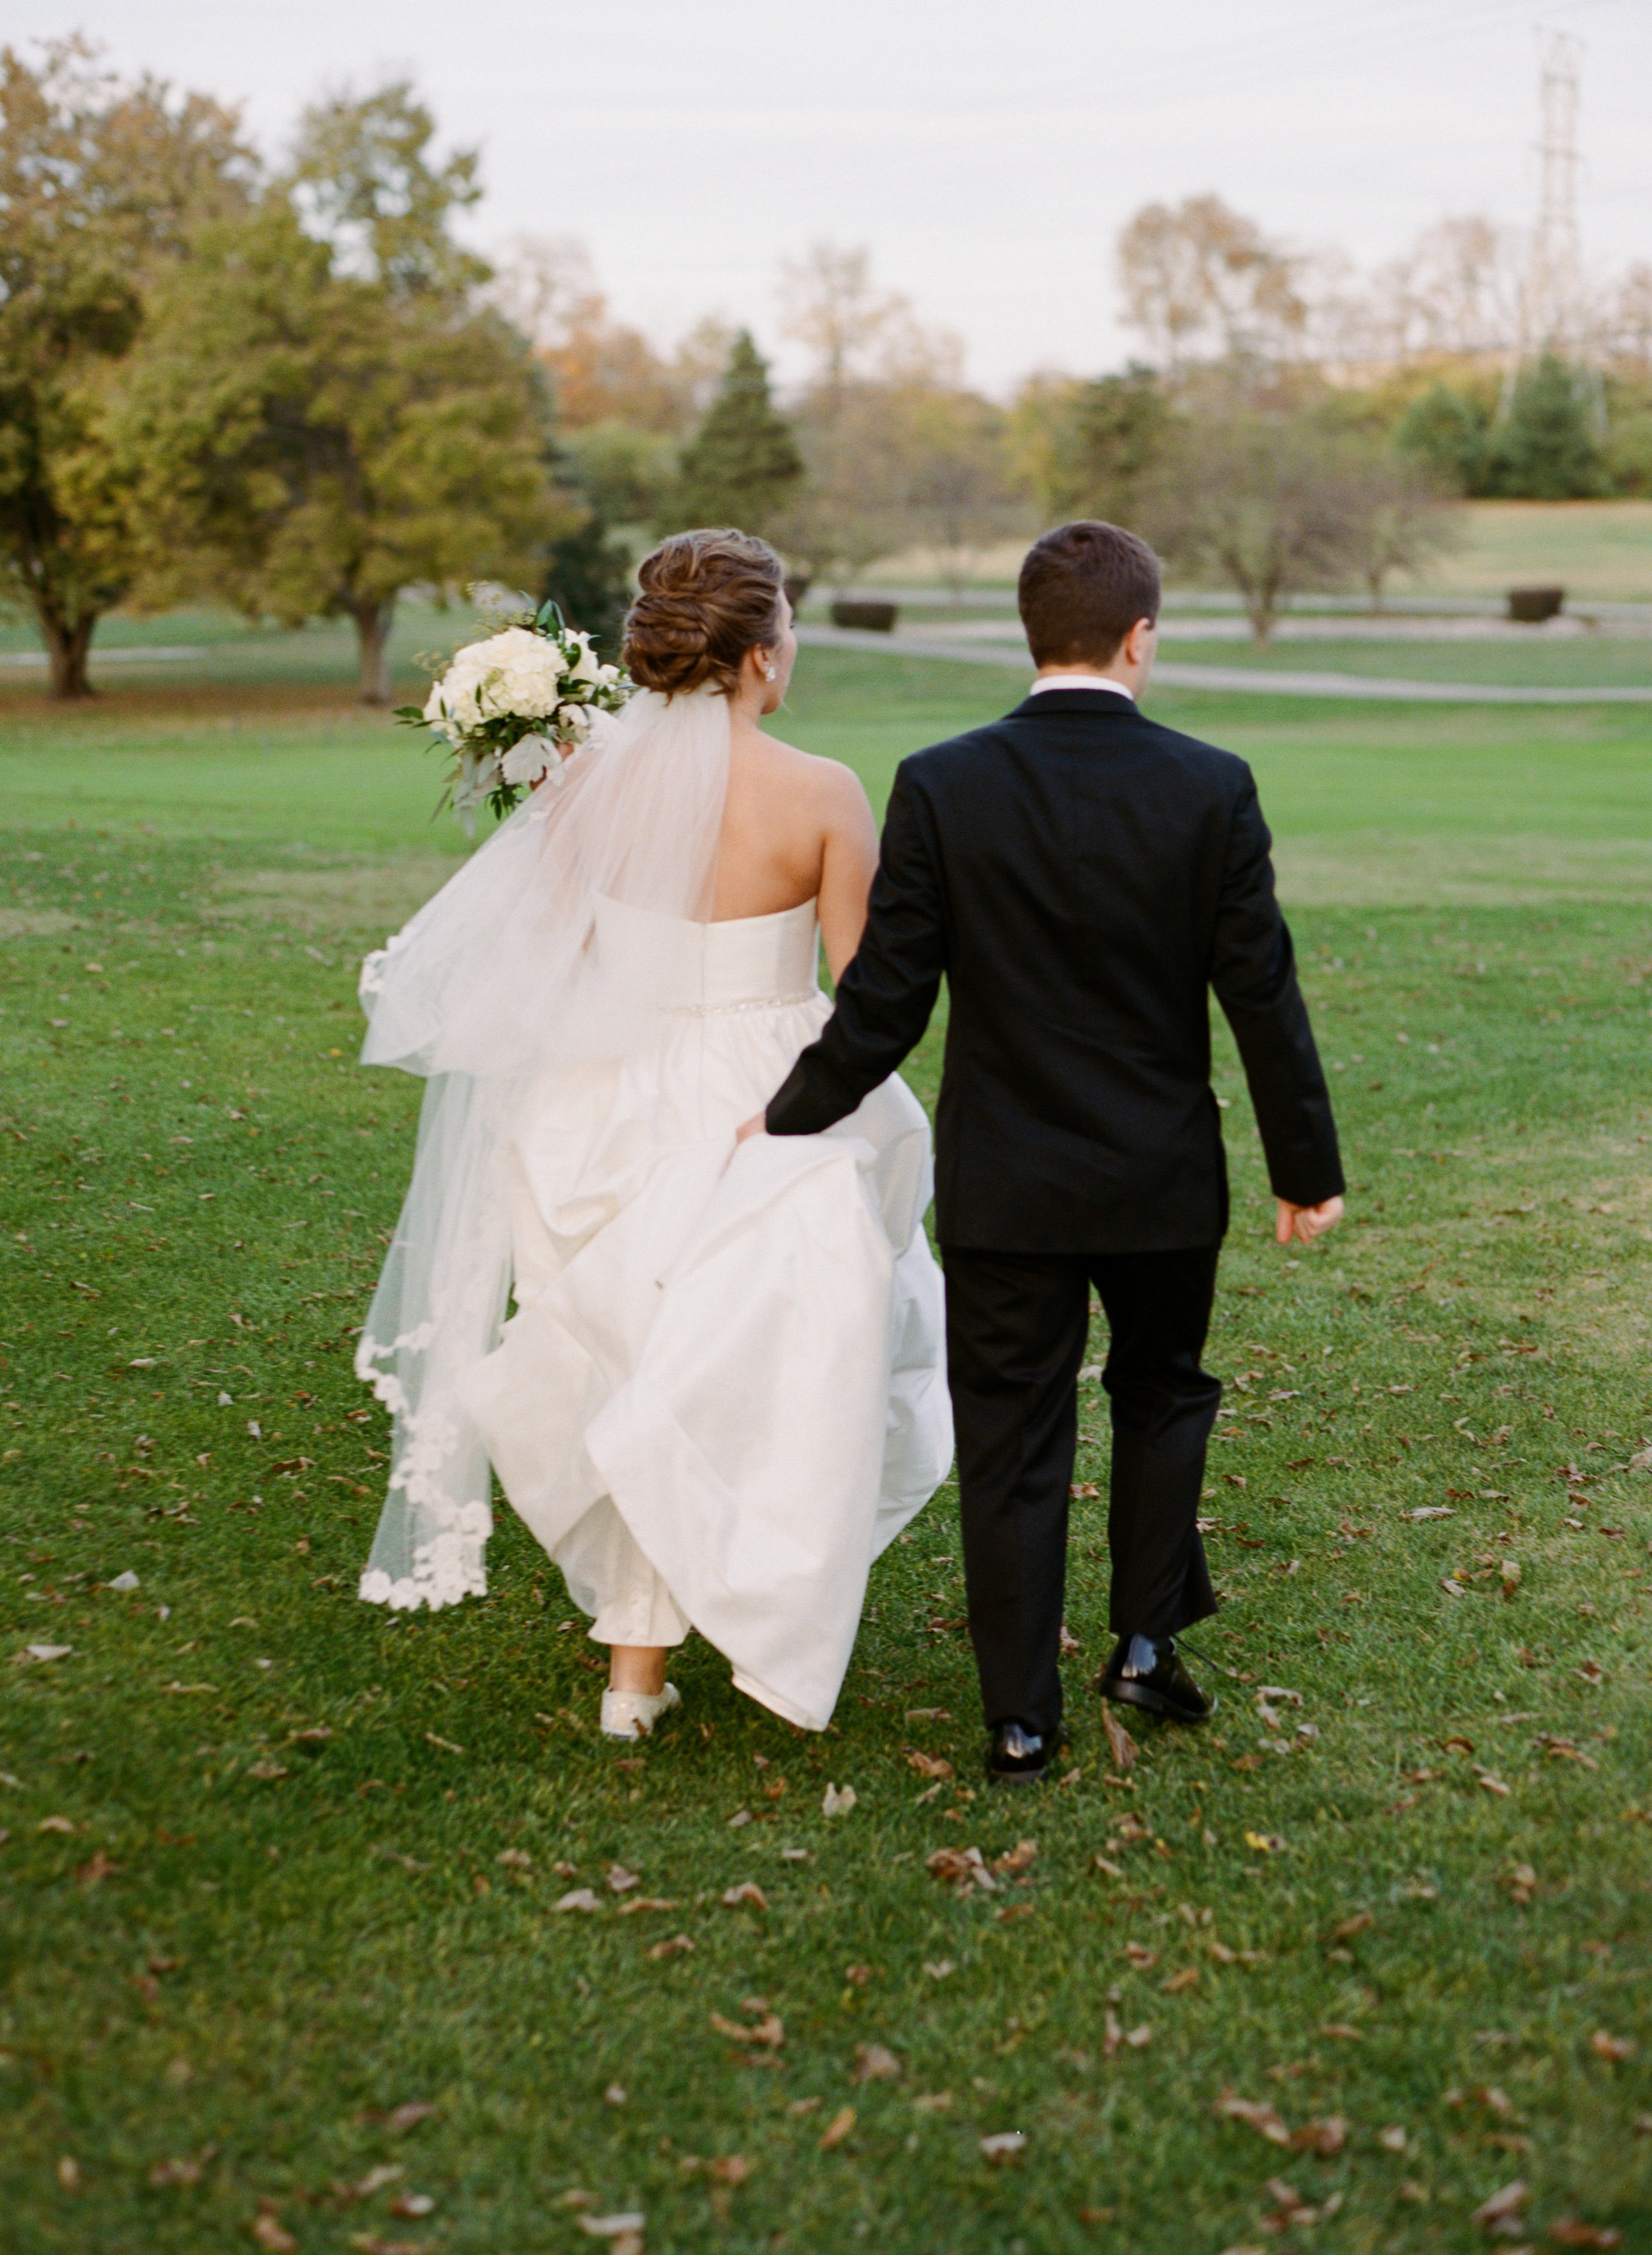 13_Bride&Groom-40.jpg